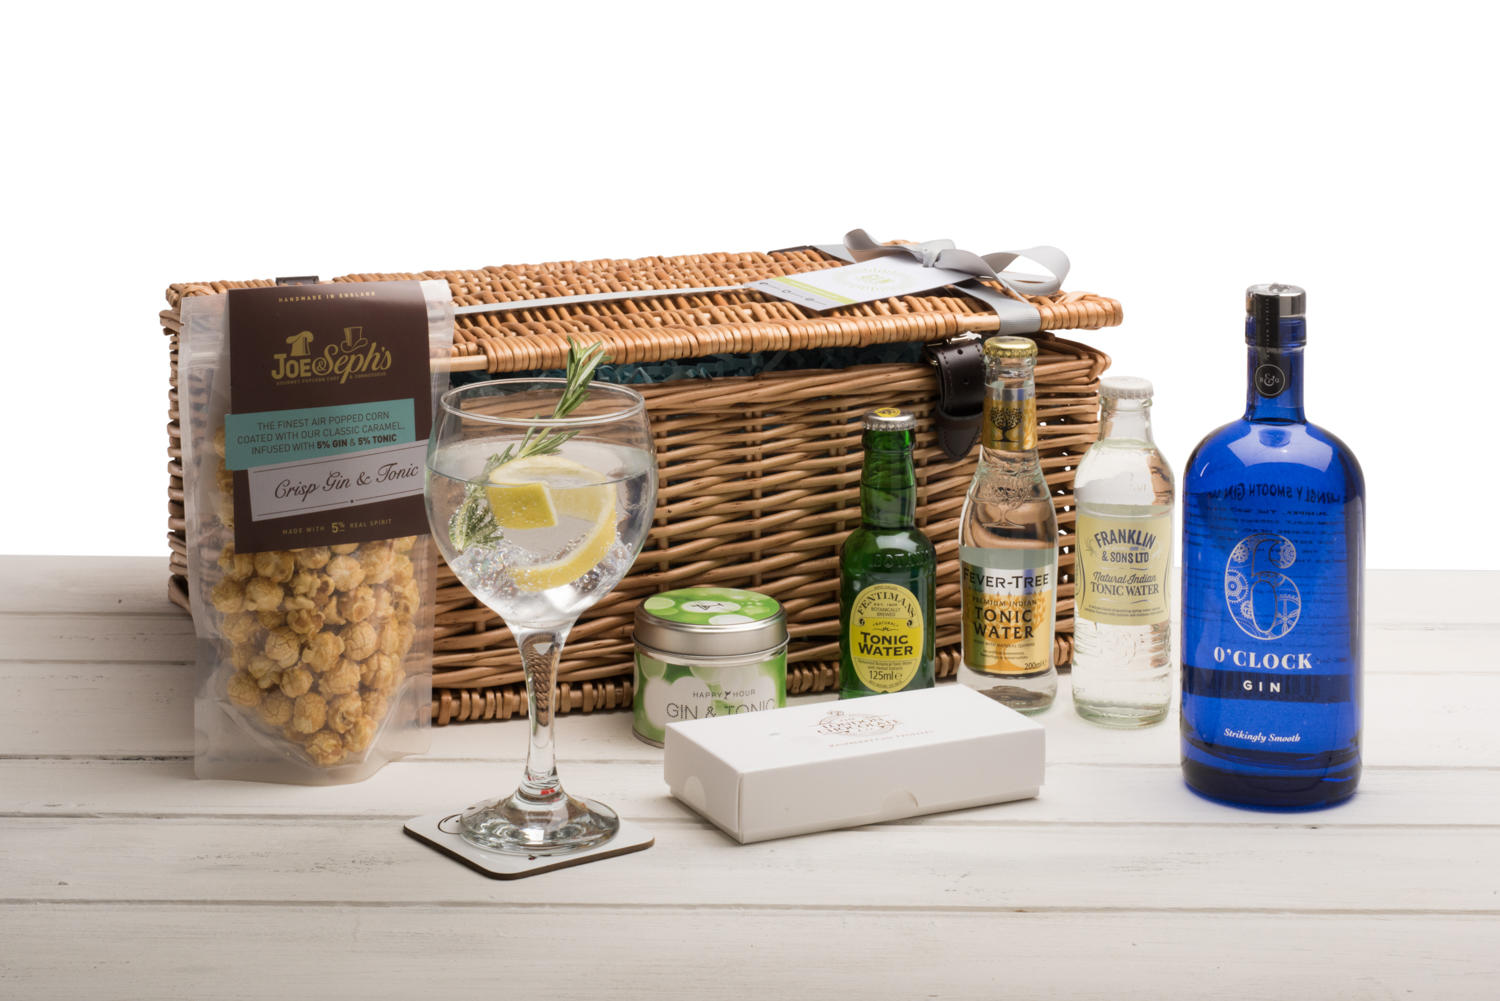 6 O'Clock Gin Hamper (Wicker Basket)